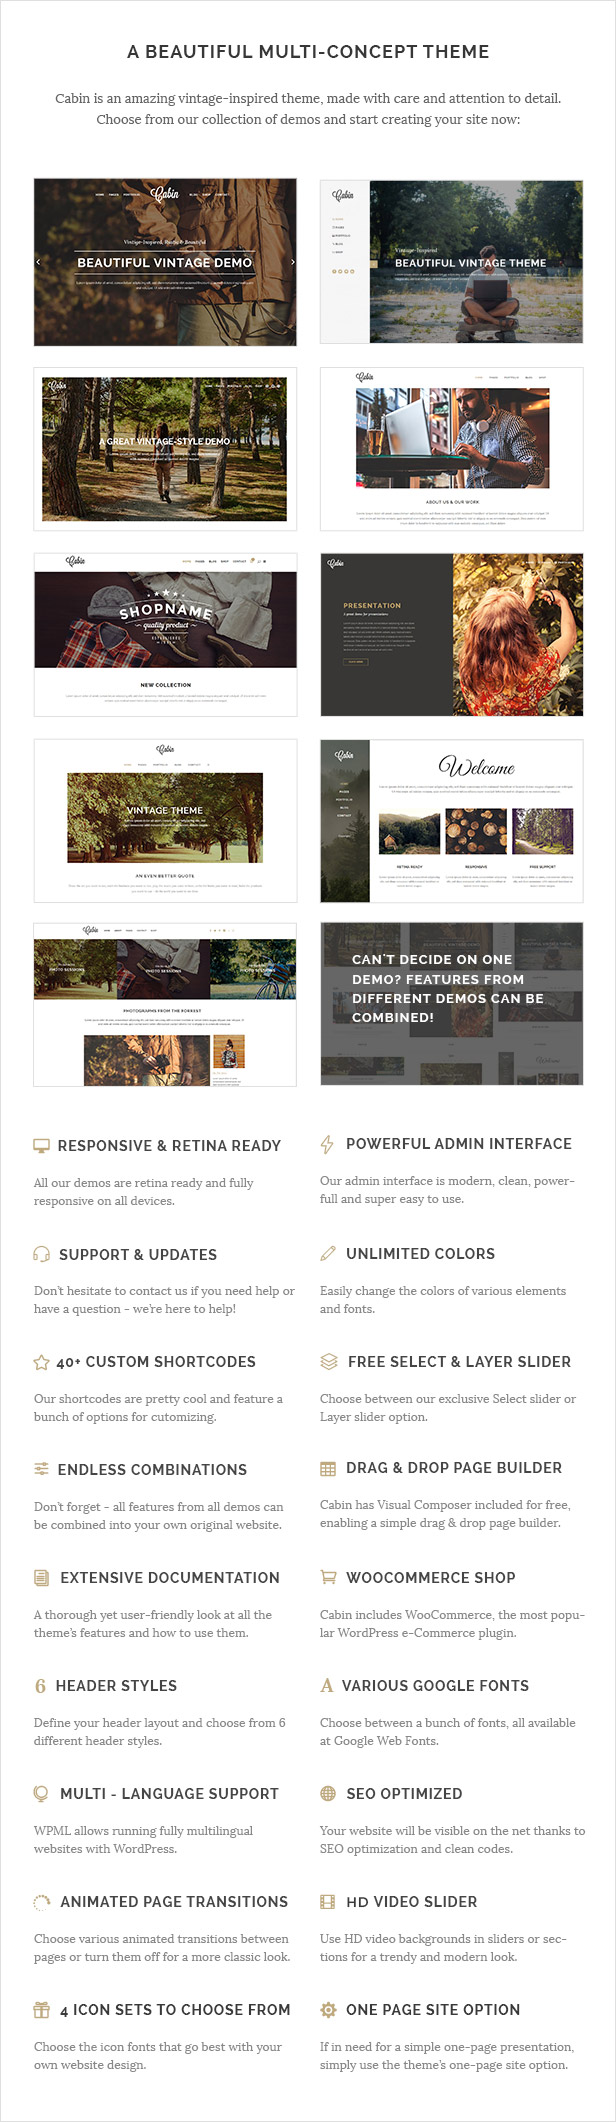 Cabin - Beautiful Vintage Theme by Select-Themes | ThemeForest